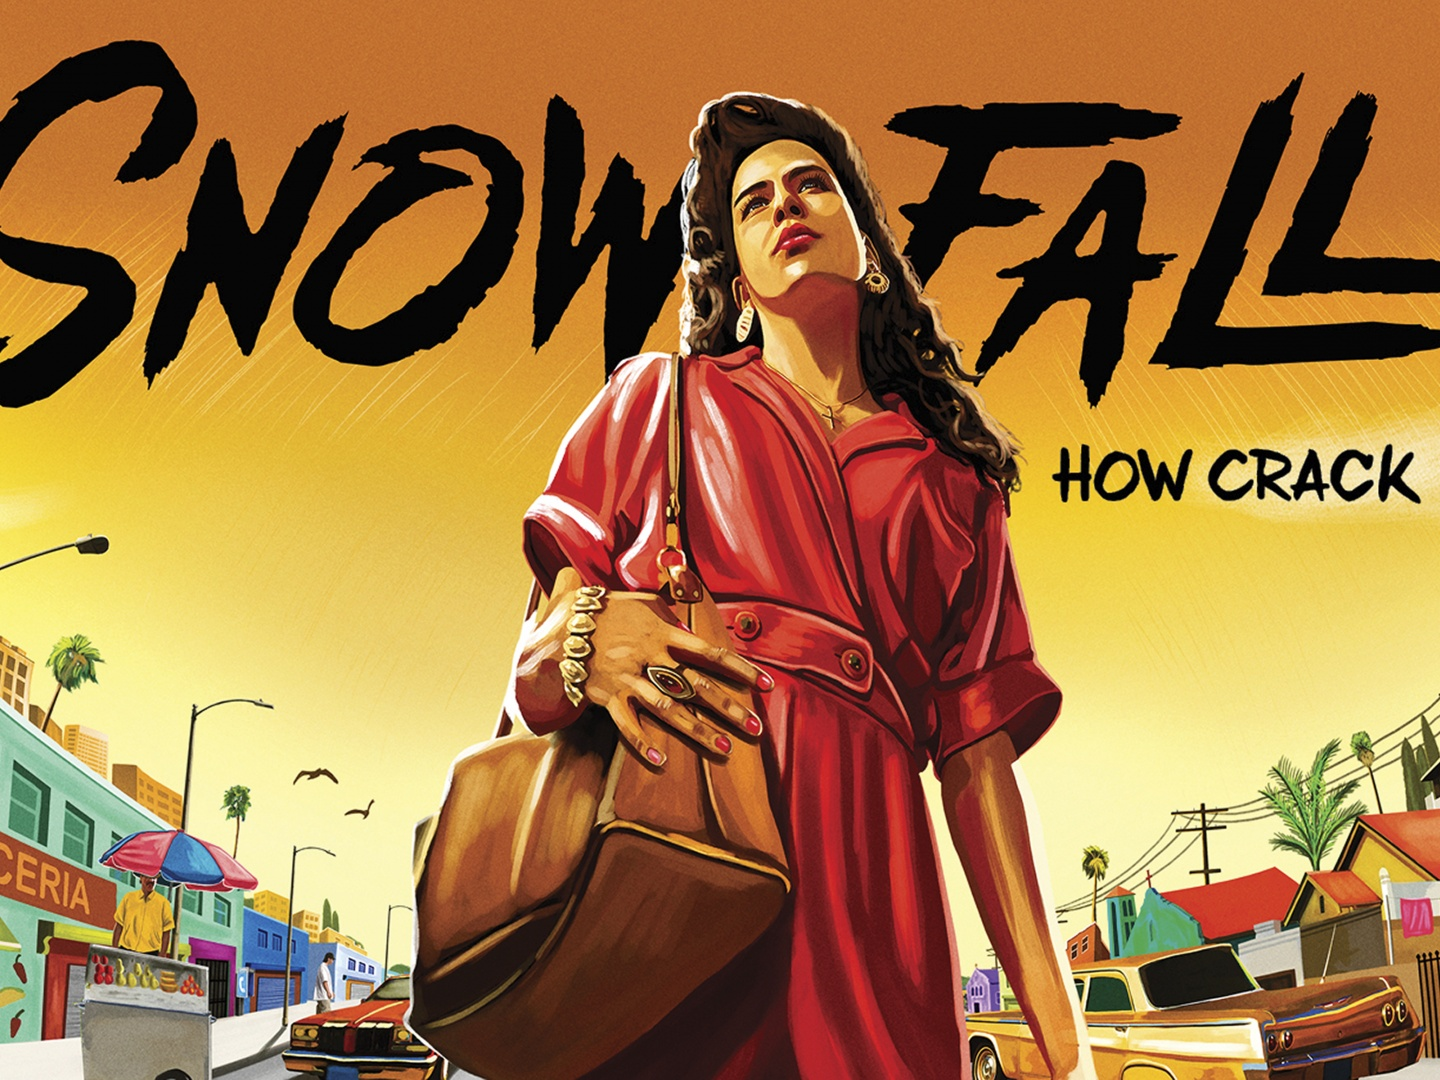 Image for Snowfall billboard (Lucia)